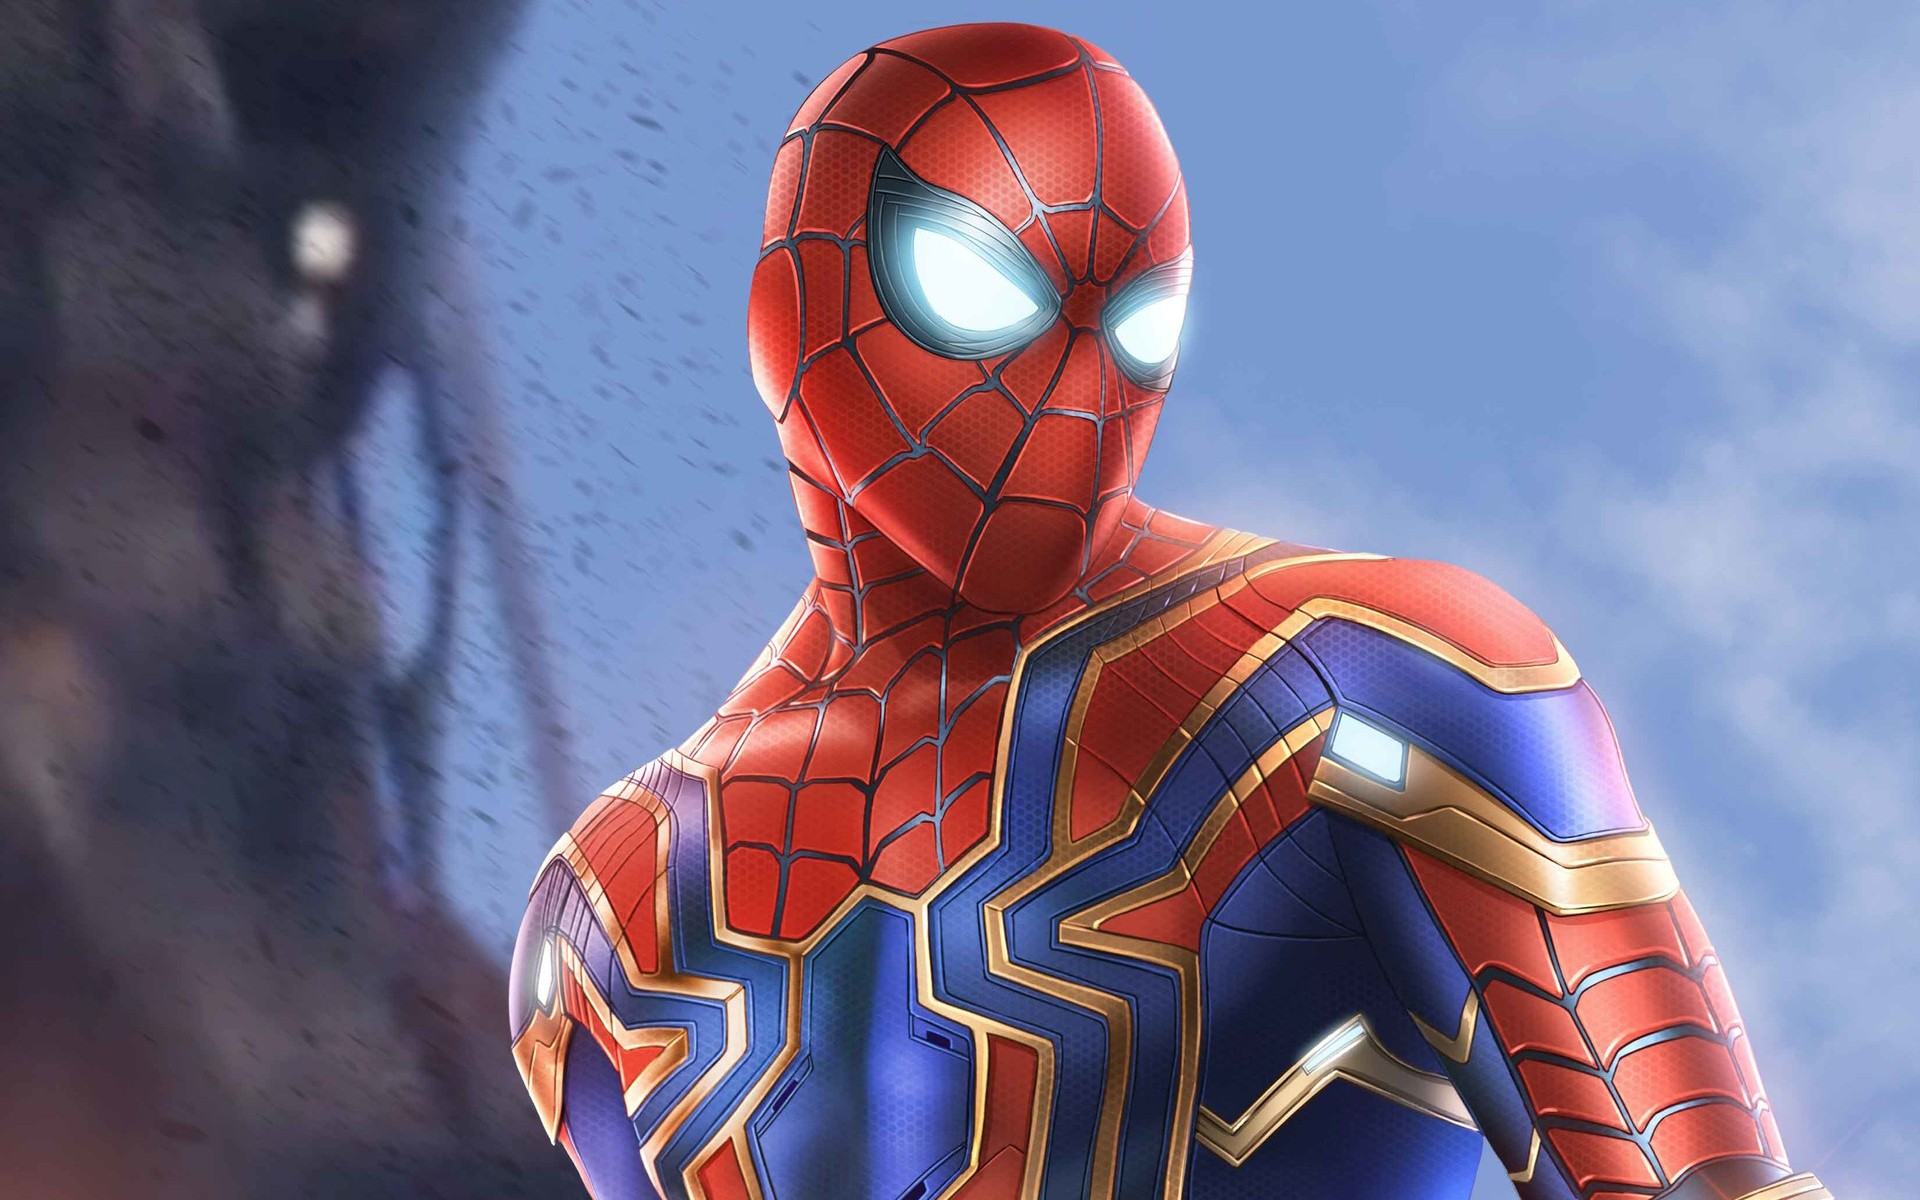 Iphone 5s Wallpaper Anime Spider Man Infinity War Armor Wallpapers Hd Wallpapers